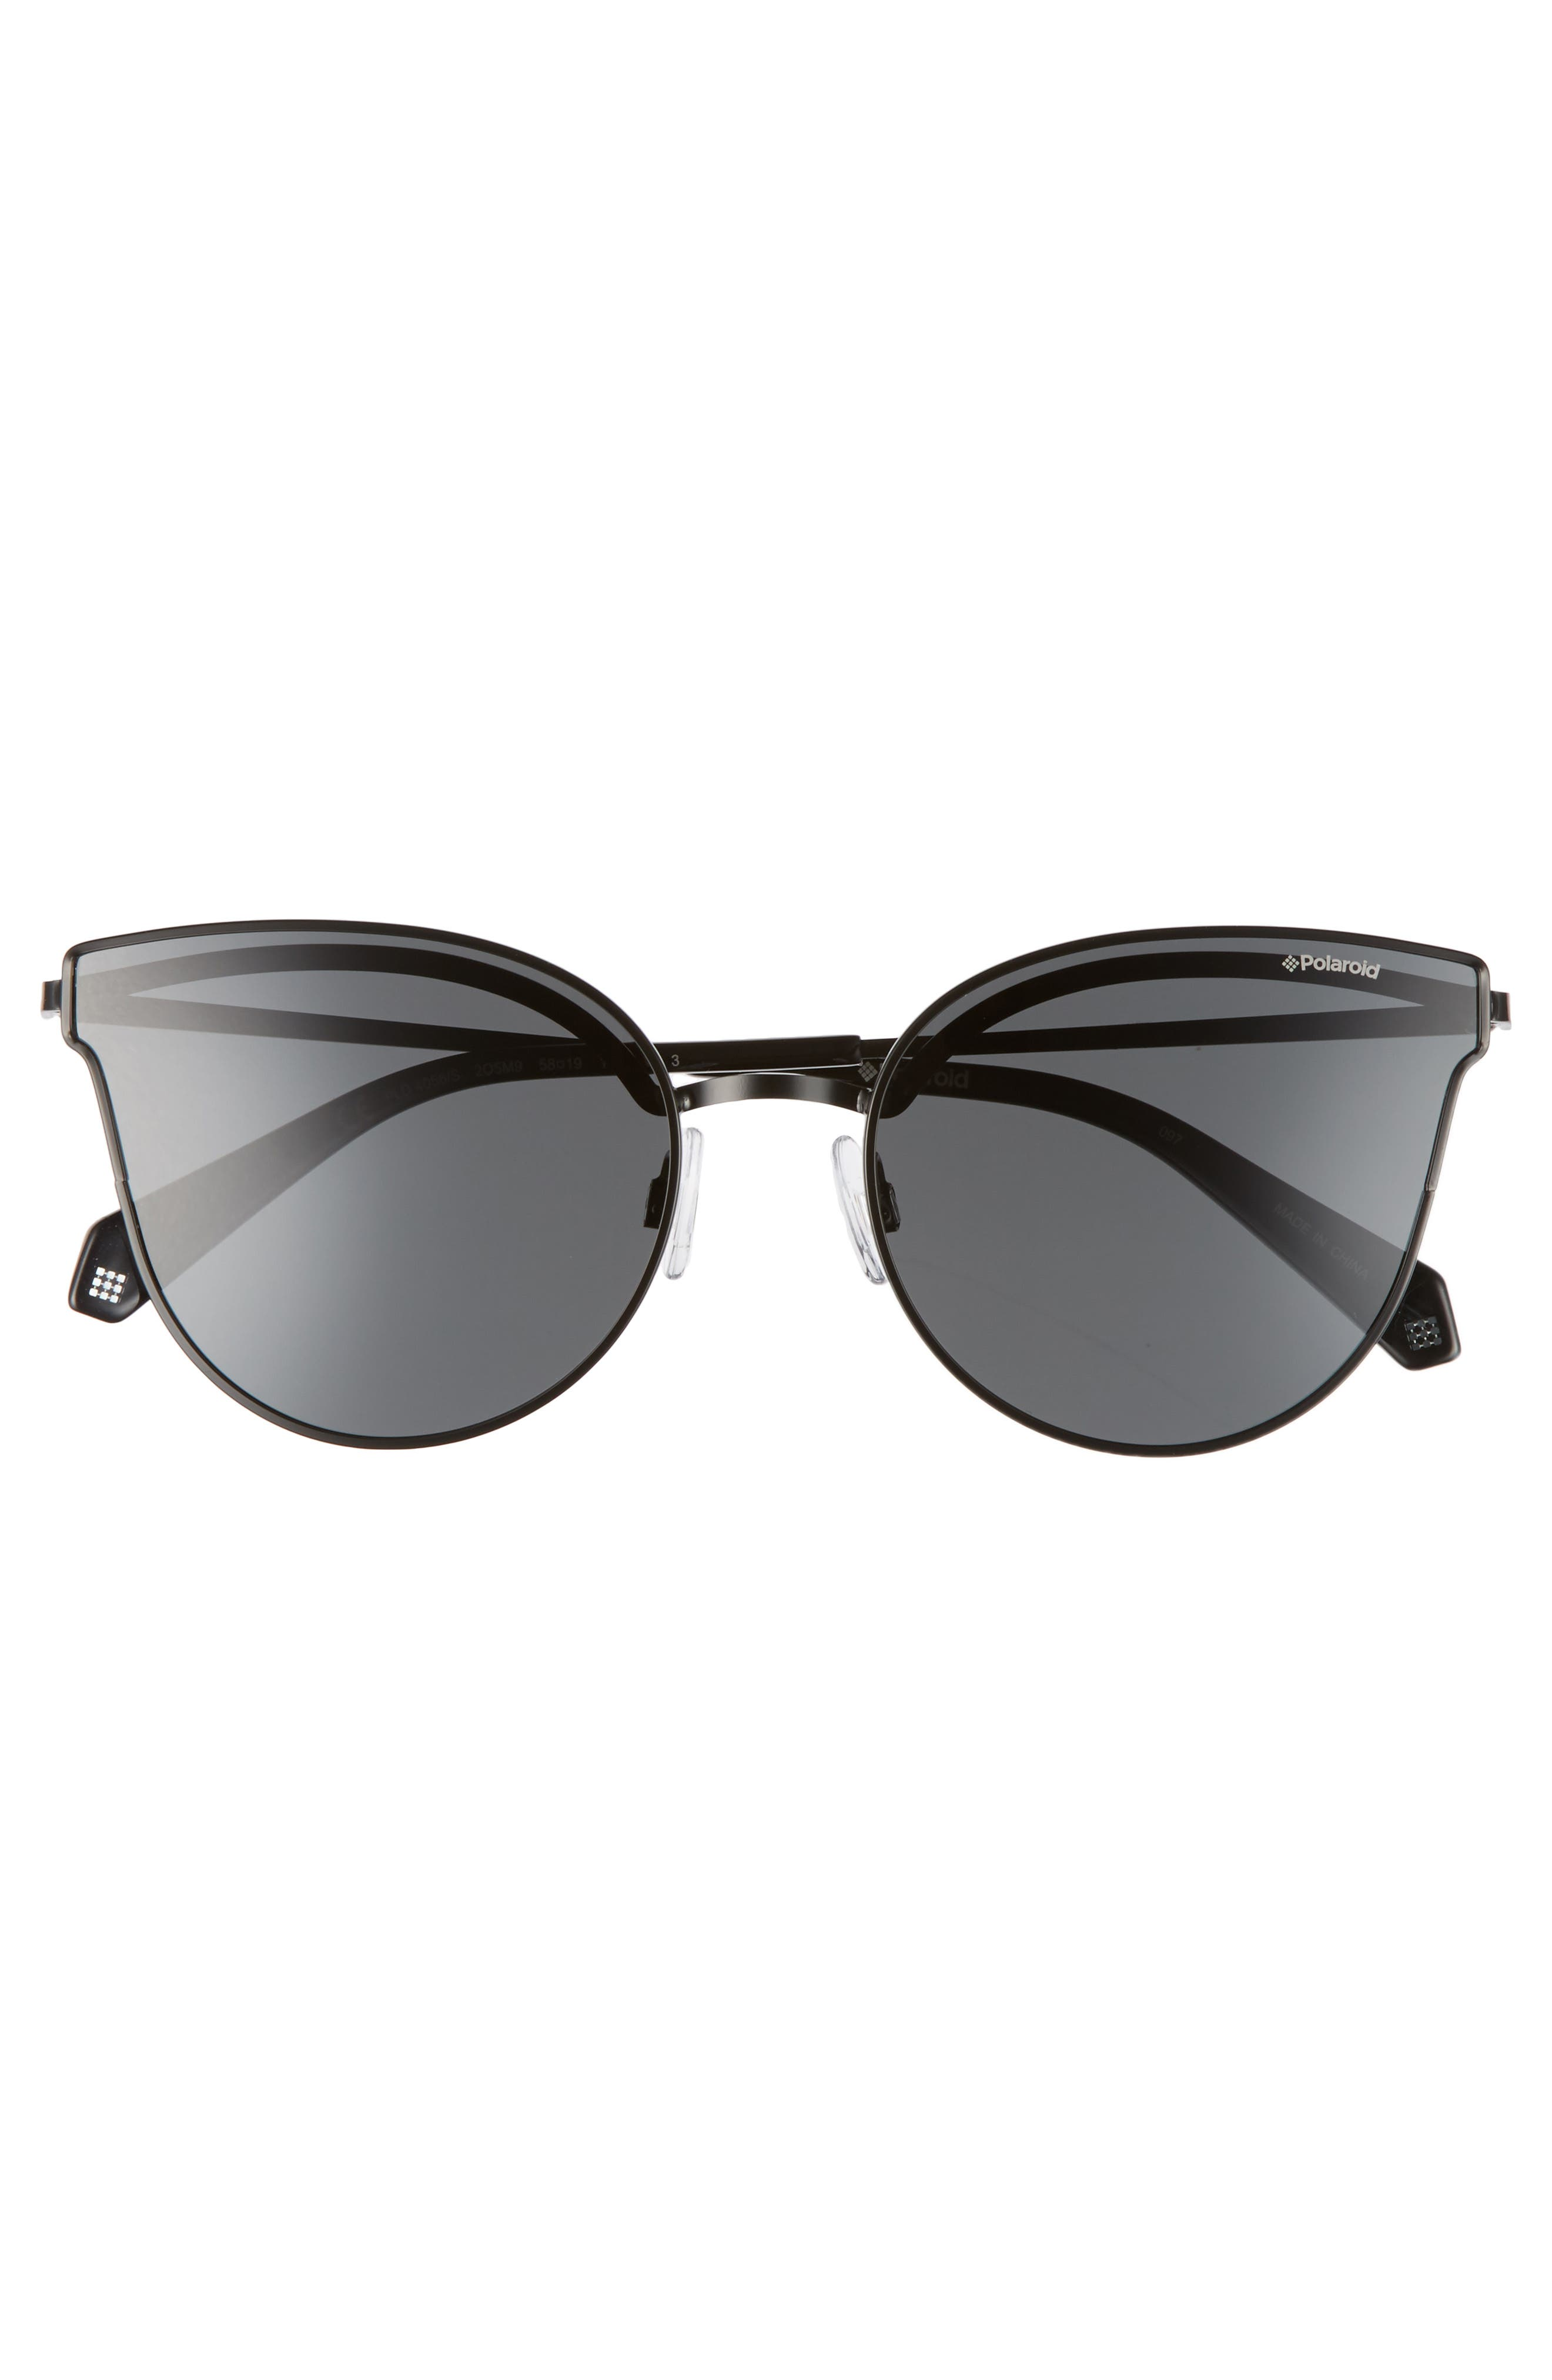 58mm Polarized Butterfly Sunglasses,                             Alternate thumbnail 3, color,                             001